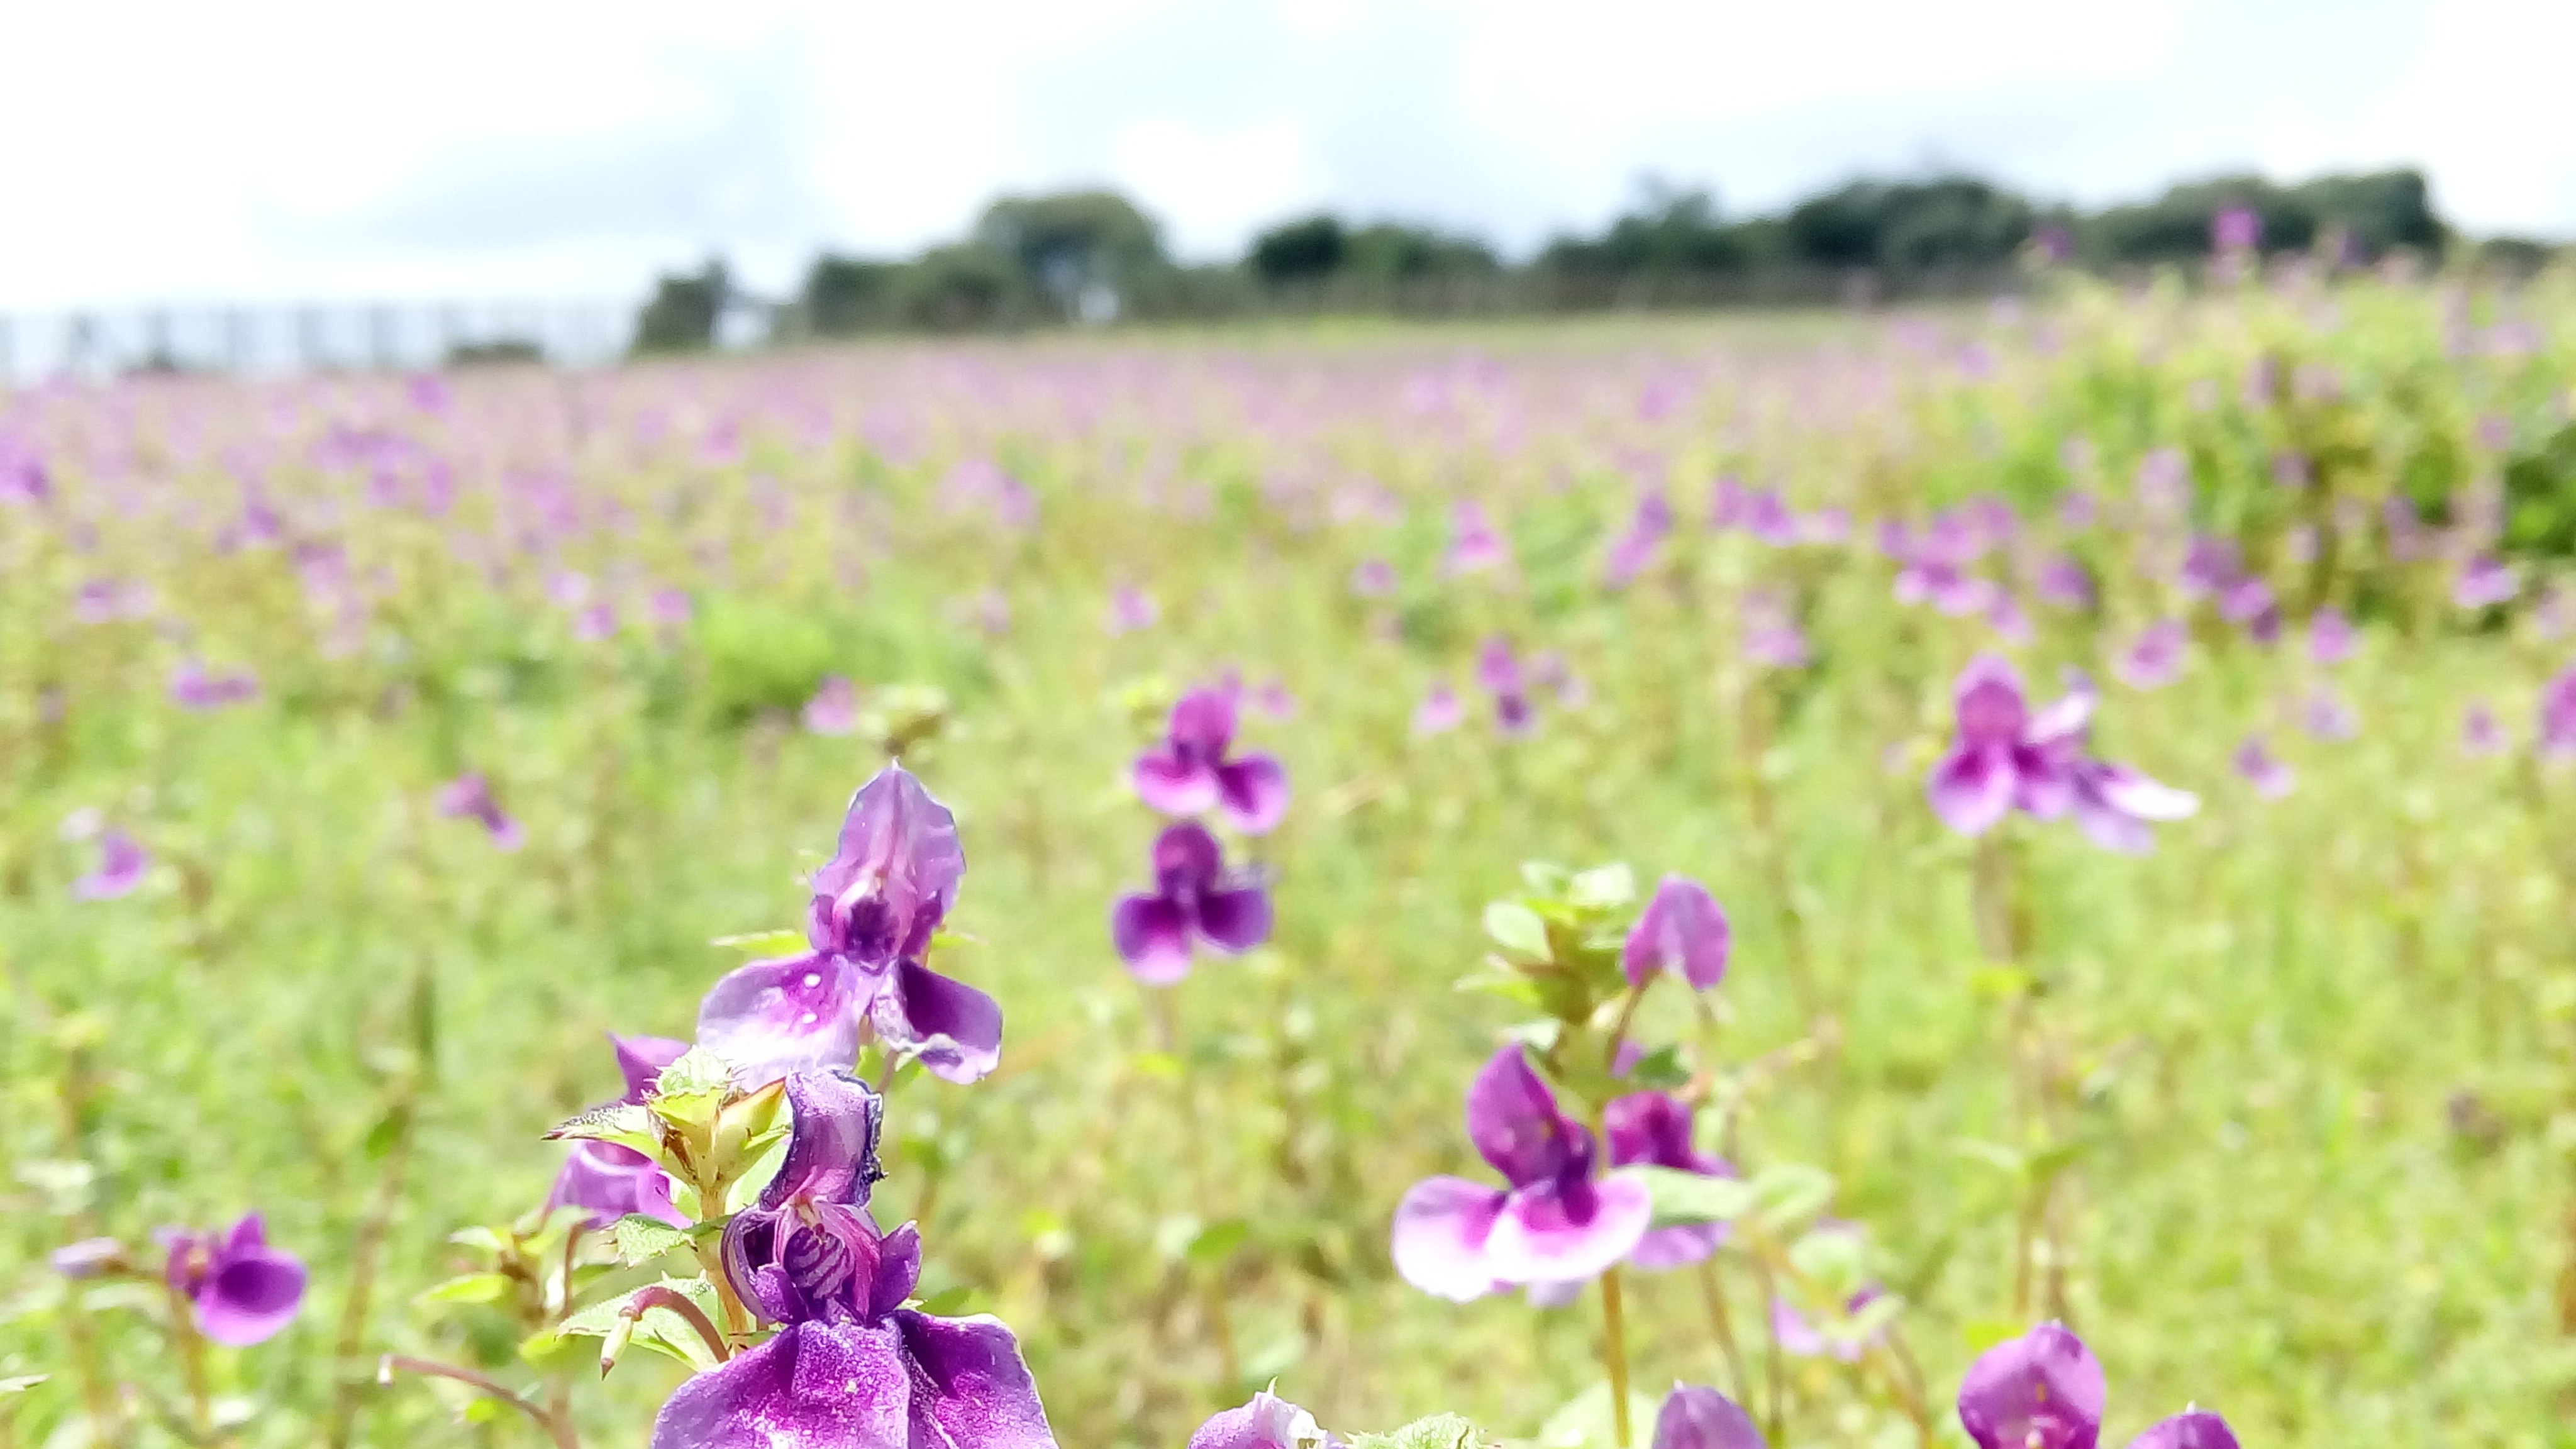 Maharashtra's Blooming Flower Industry Succumbs to COVID Chills